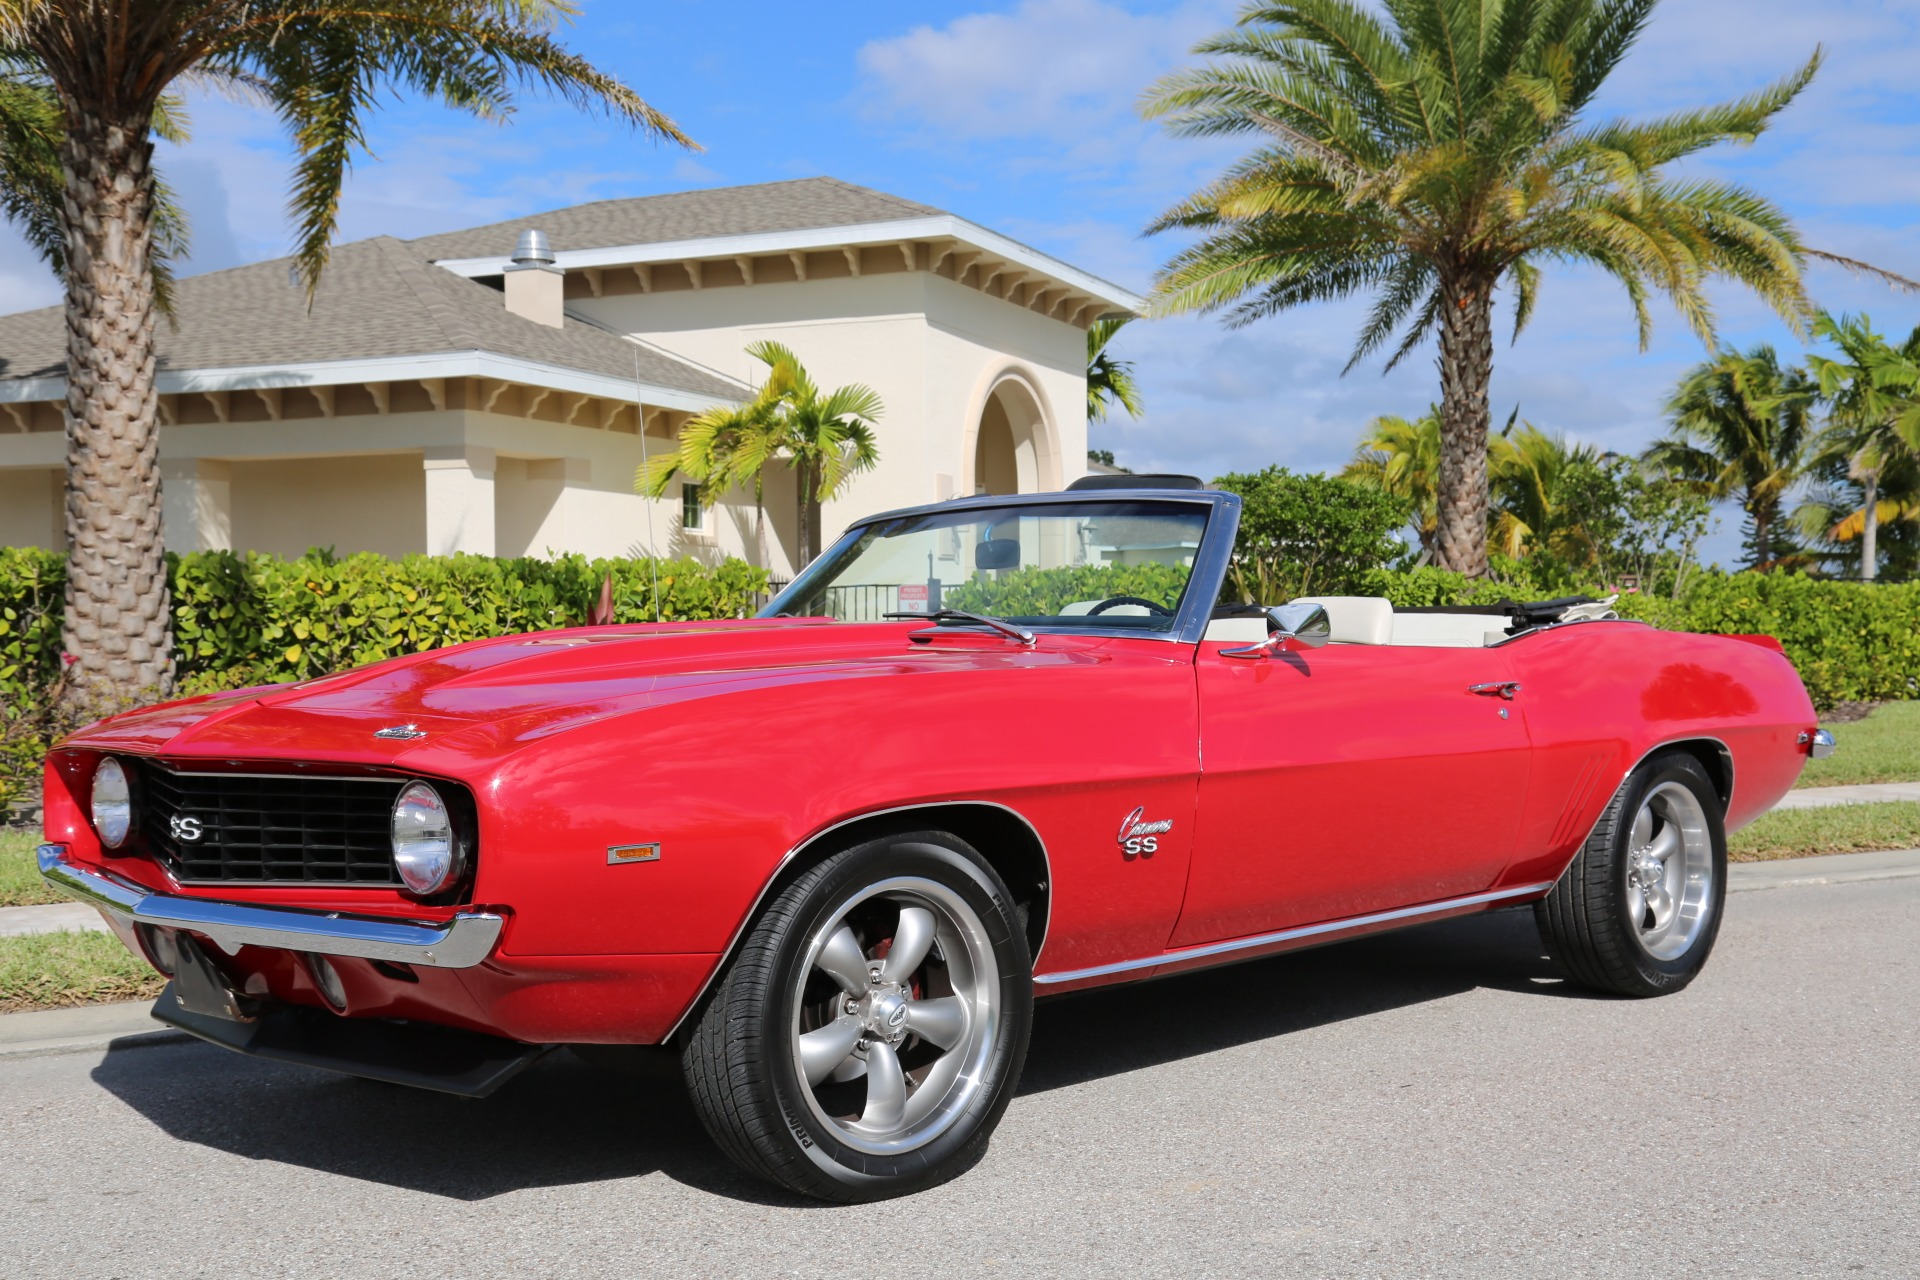 Used 1969 Chevy Camaro Convertible V8 Auto 12 Bolt Rear for sale Sold at Muscle Cars for Sale Inc. in Fort Myers FL 33912 4